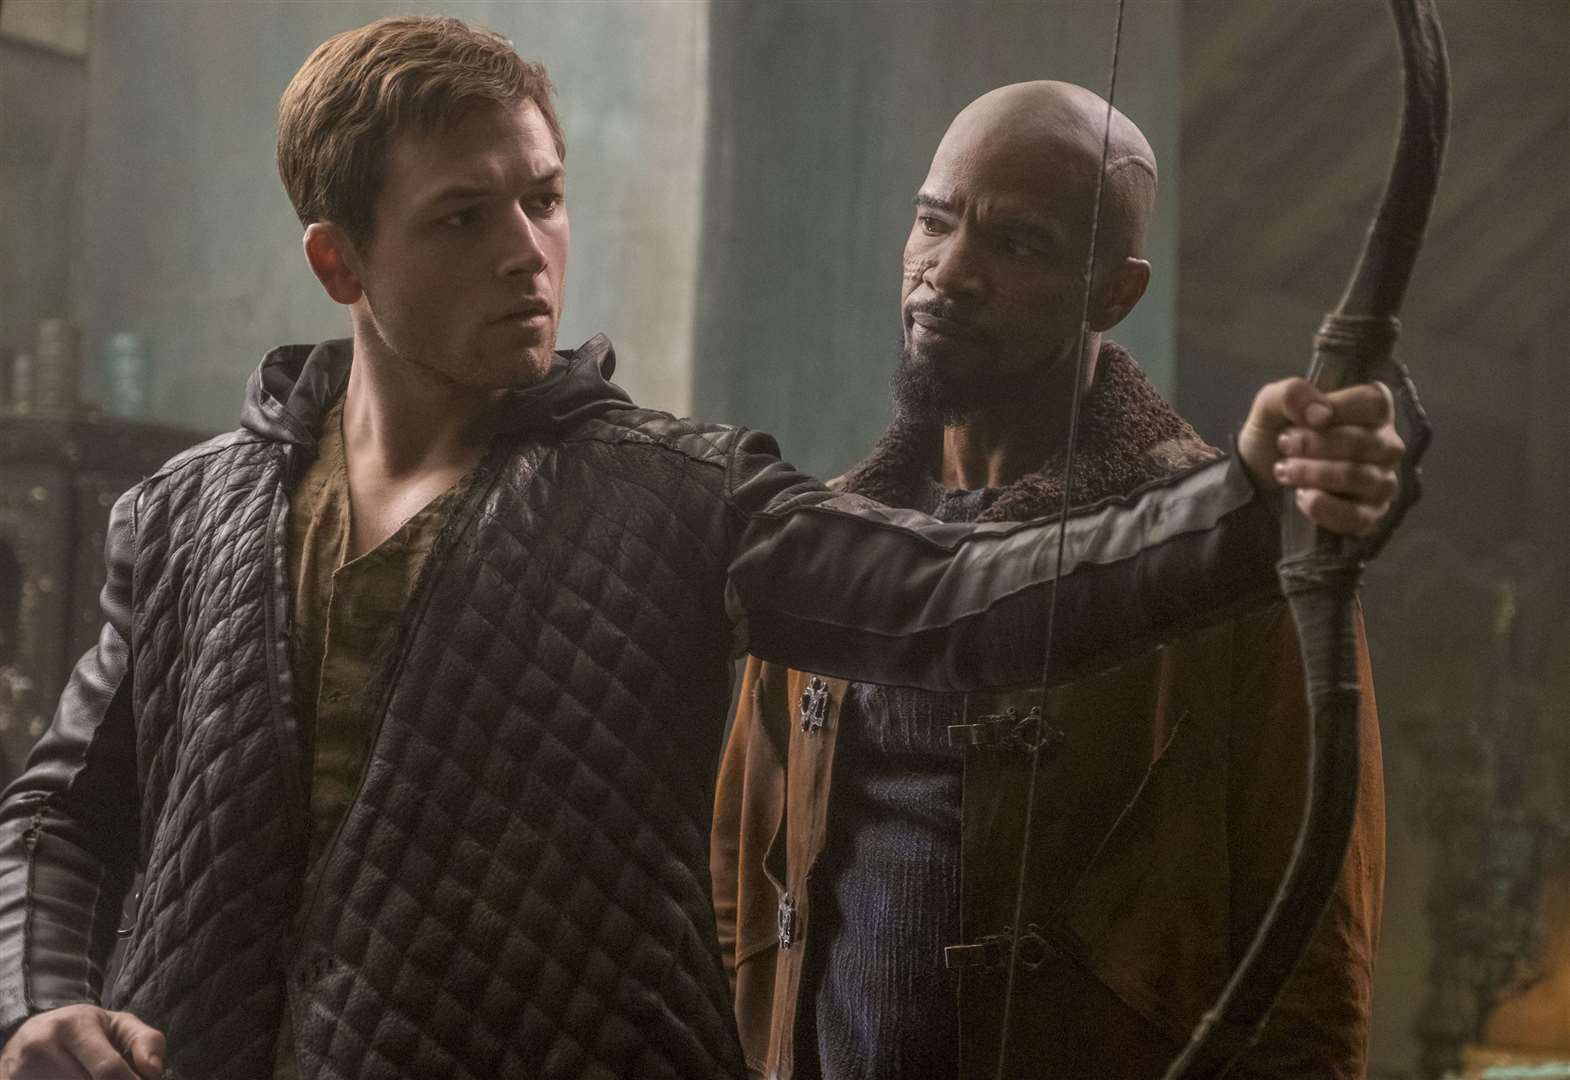 Robin Hood hits the top spot in rental charts